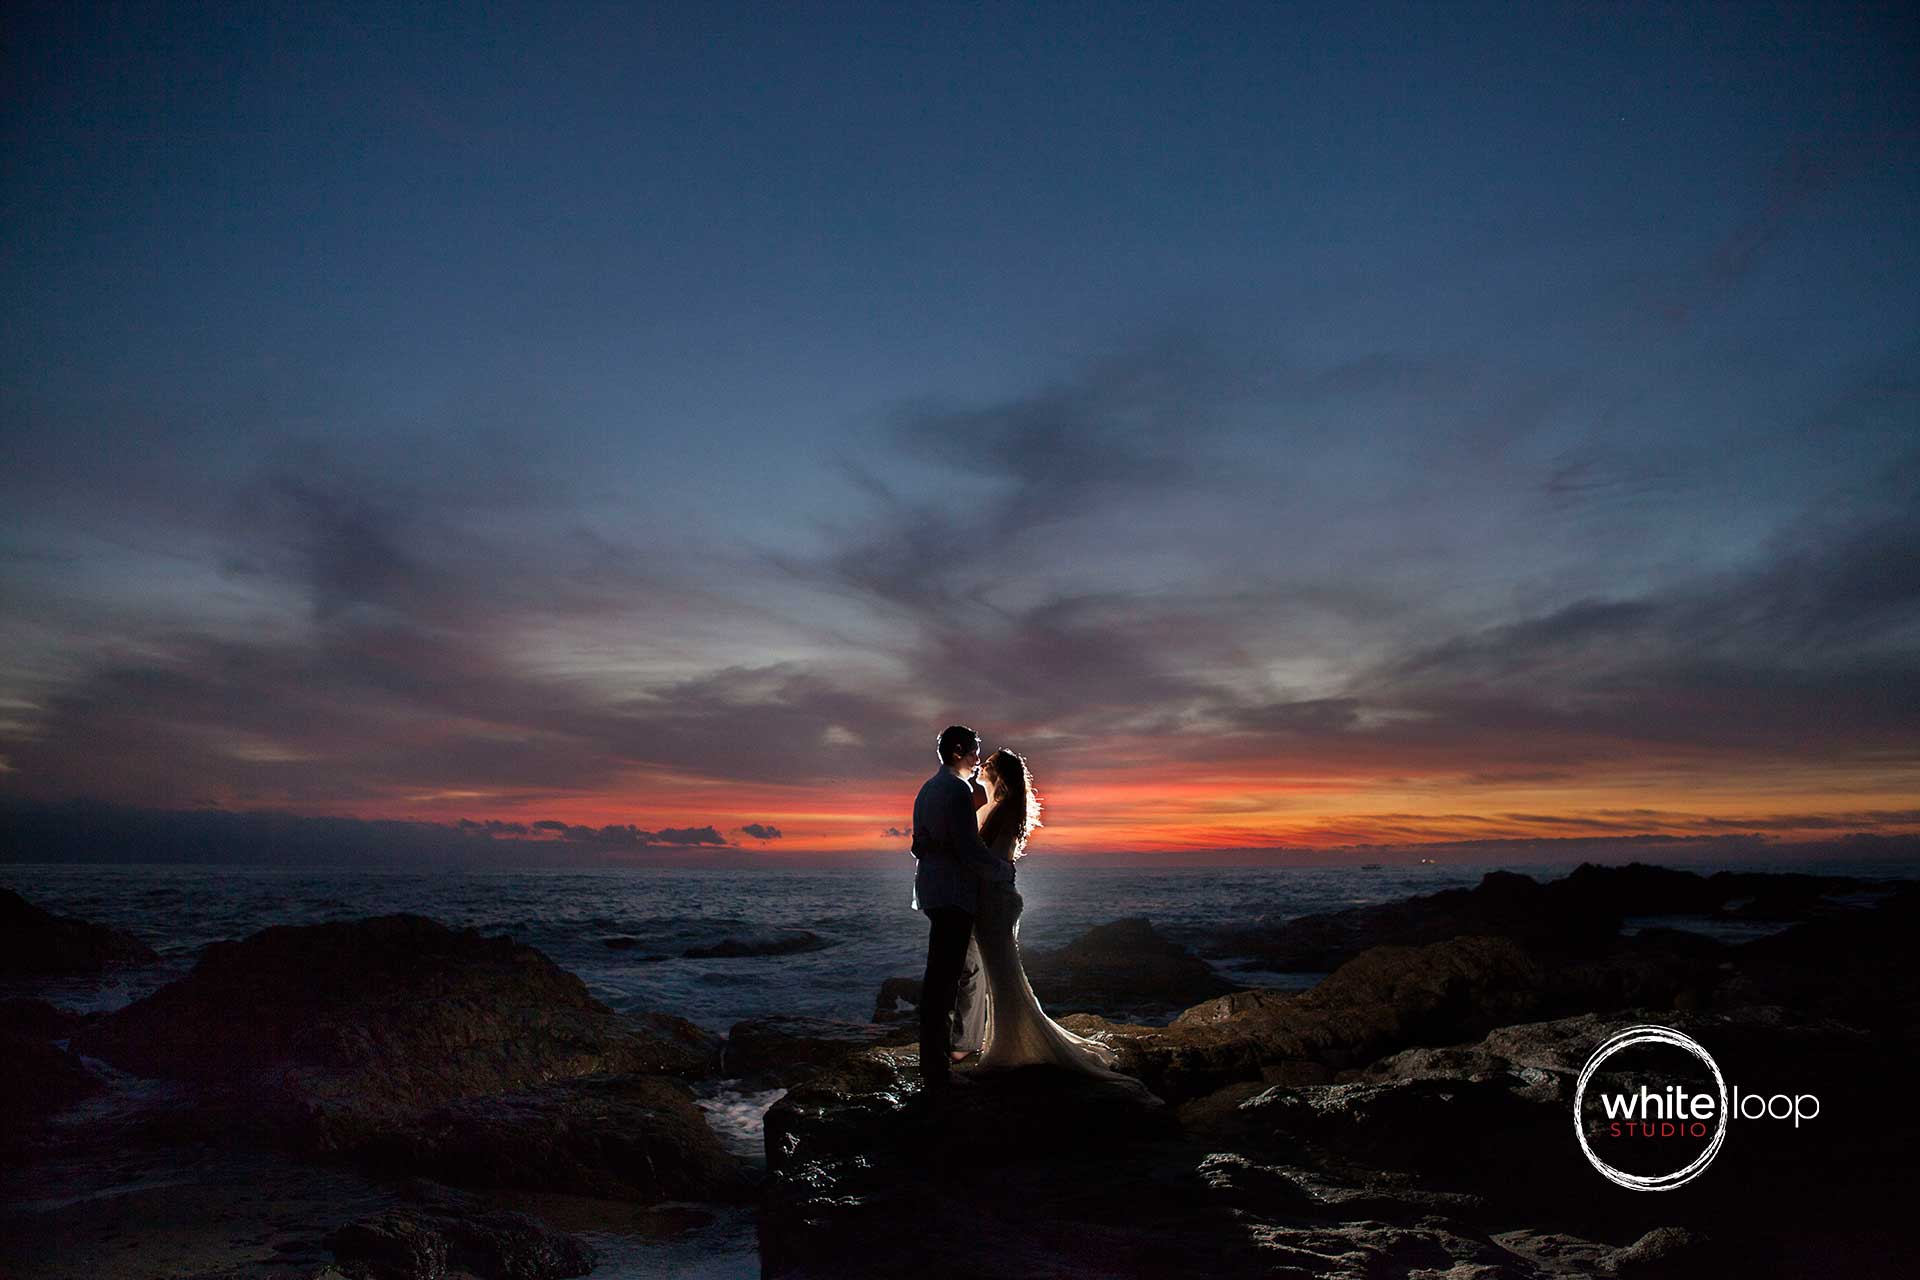 The bride and groom in the middle of the rocky seashore, in a sunset, illuminated with a lamp.